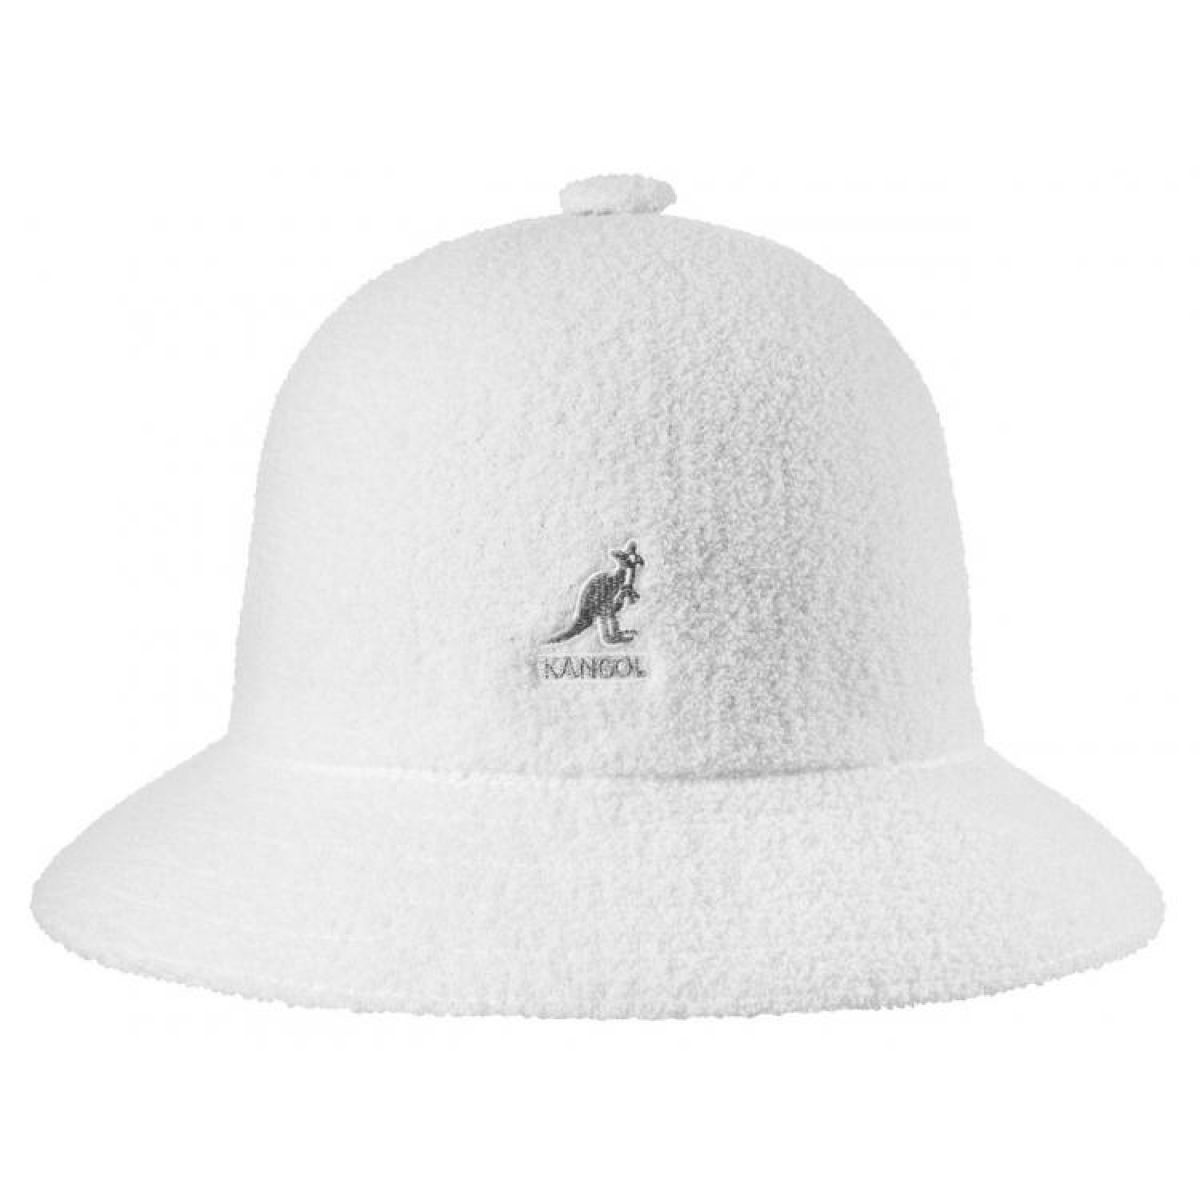 Kangol Cappello esploratore Bermuda Casual in